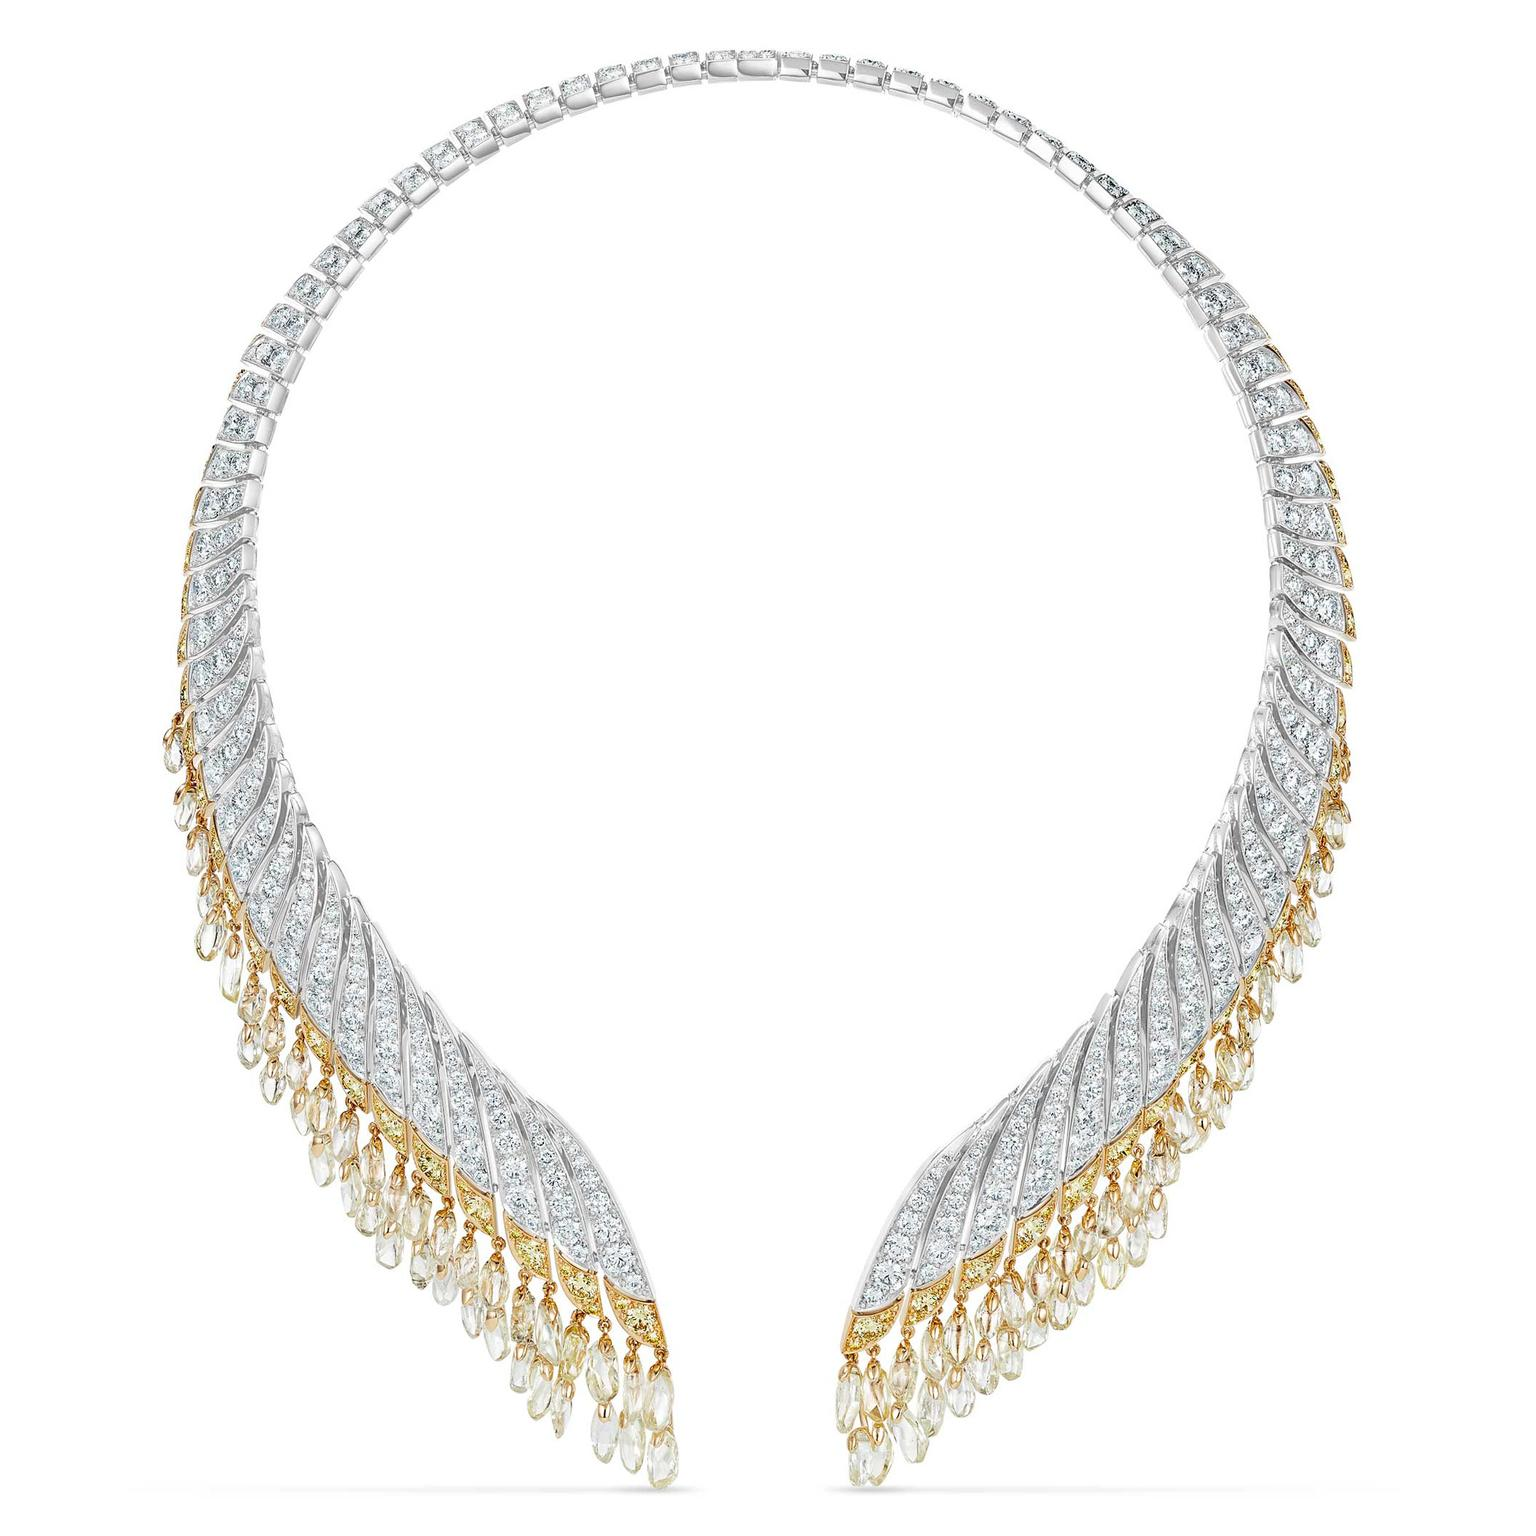 Namib Wonder necklace by De Beers